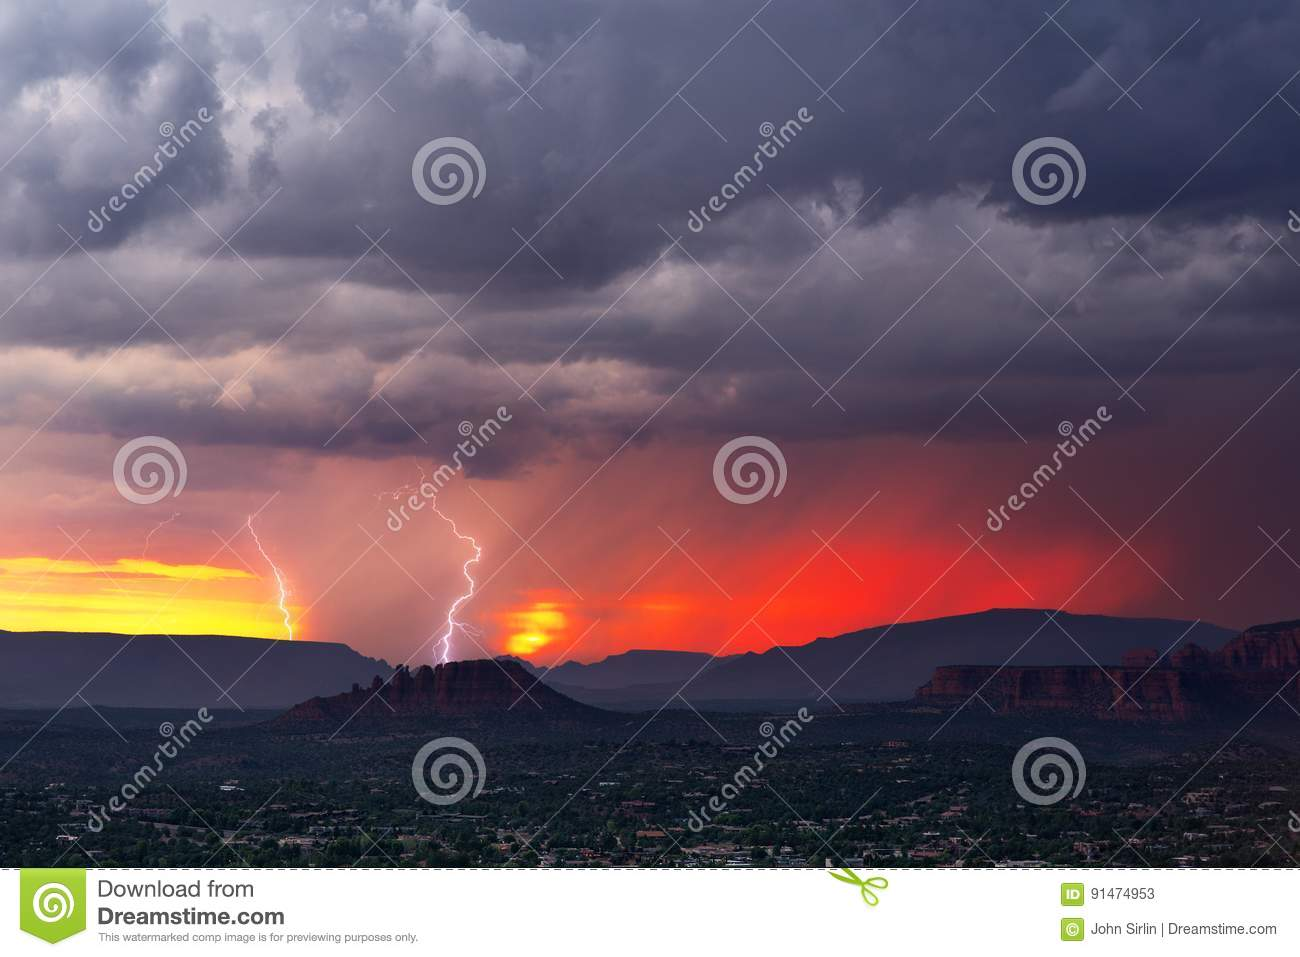 Dramatic Sunset Sky With Lightning And Storm Clouds Stock